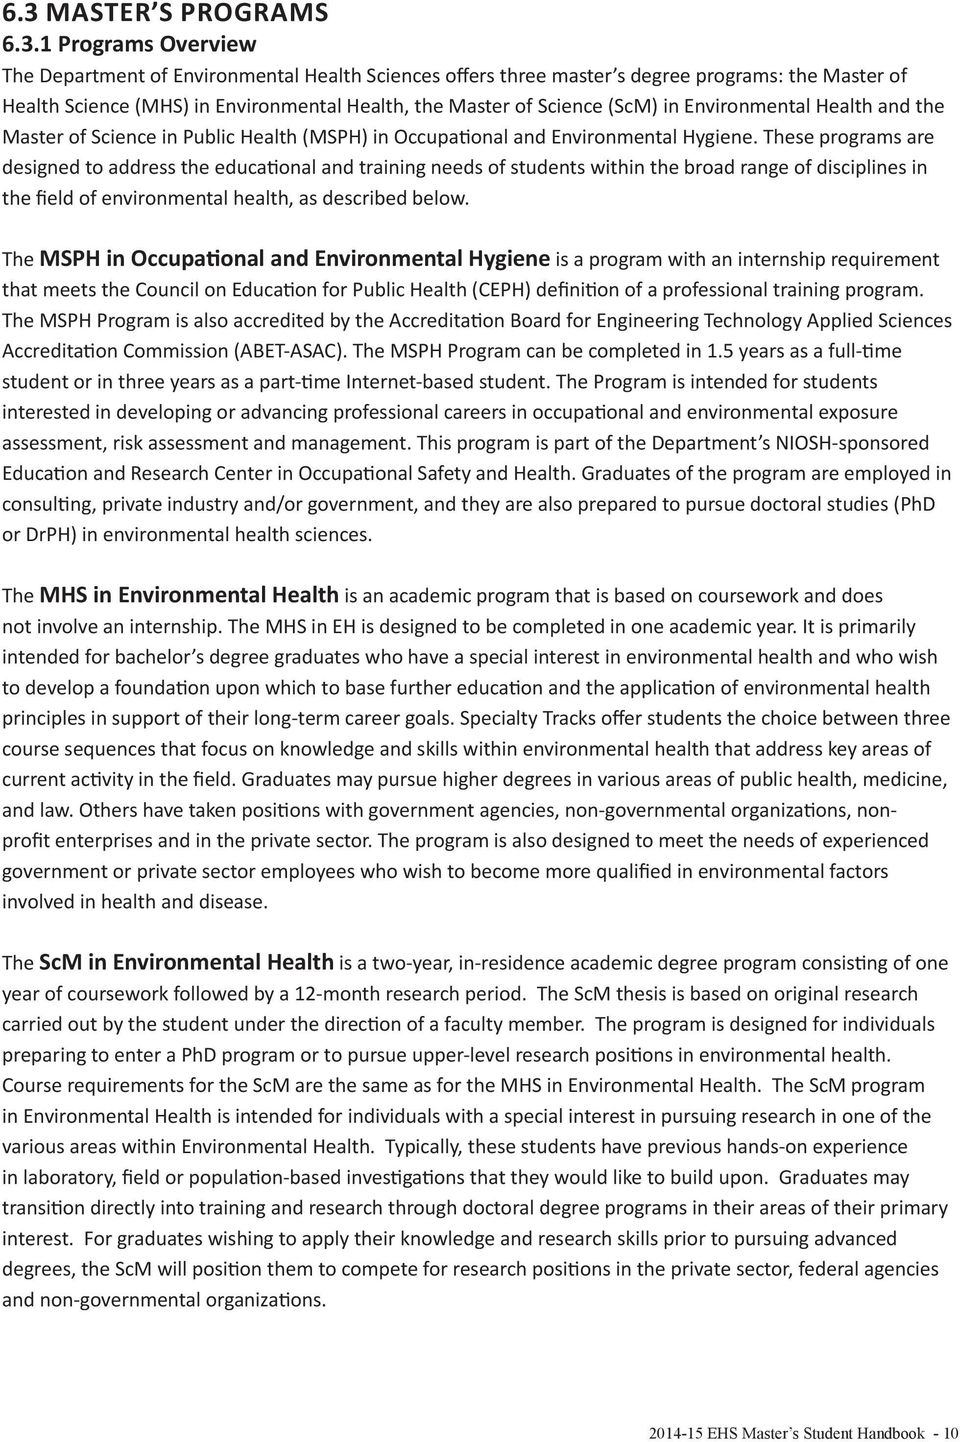 These programs are designed to address the educational and training needs of students within the broad range of disciplines in the field of environmental health, as described below.